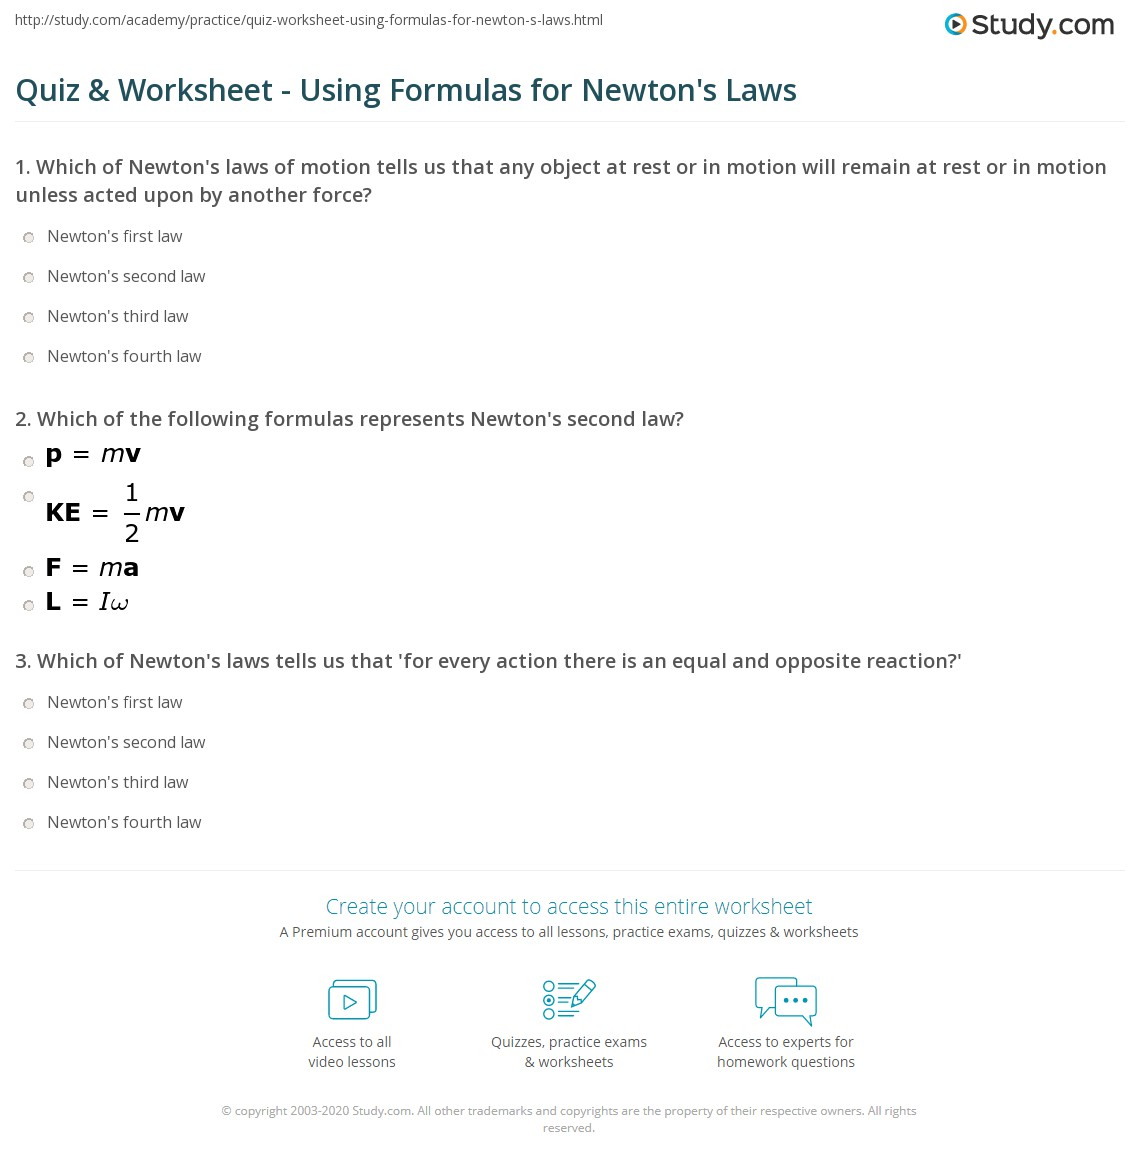 Worksheet Using Formulas